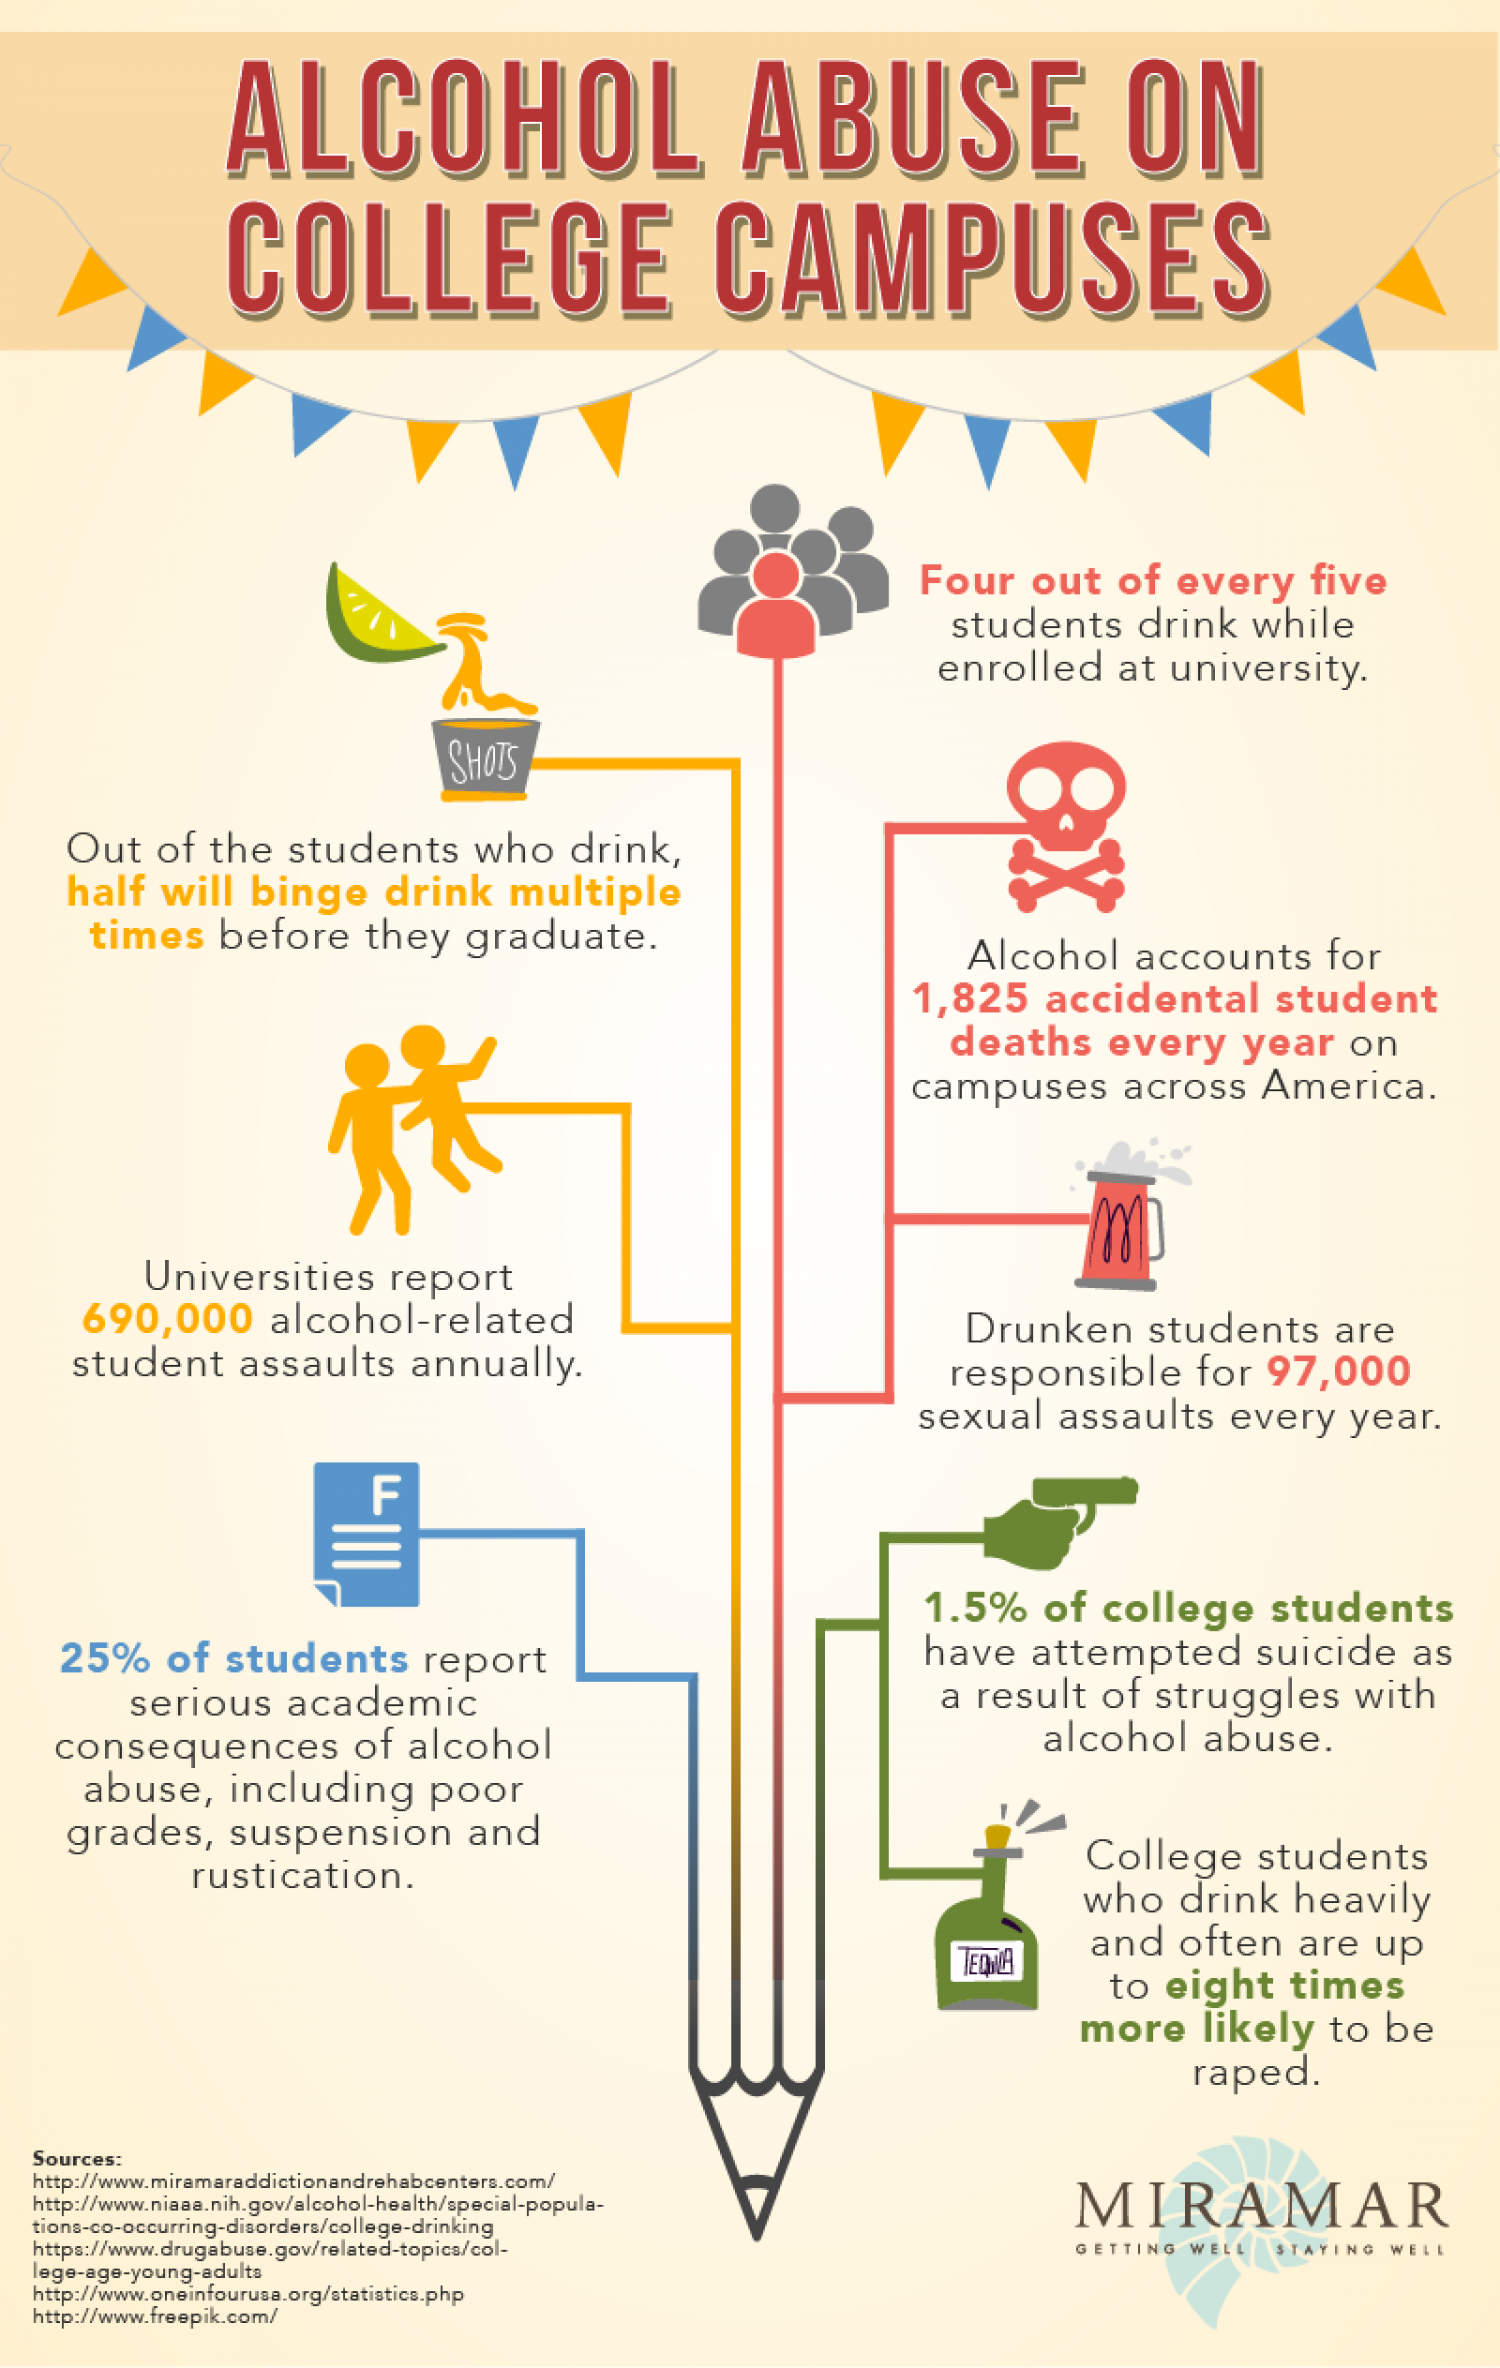 an analysis of the reason for alcohol abuse on college campuses